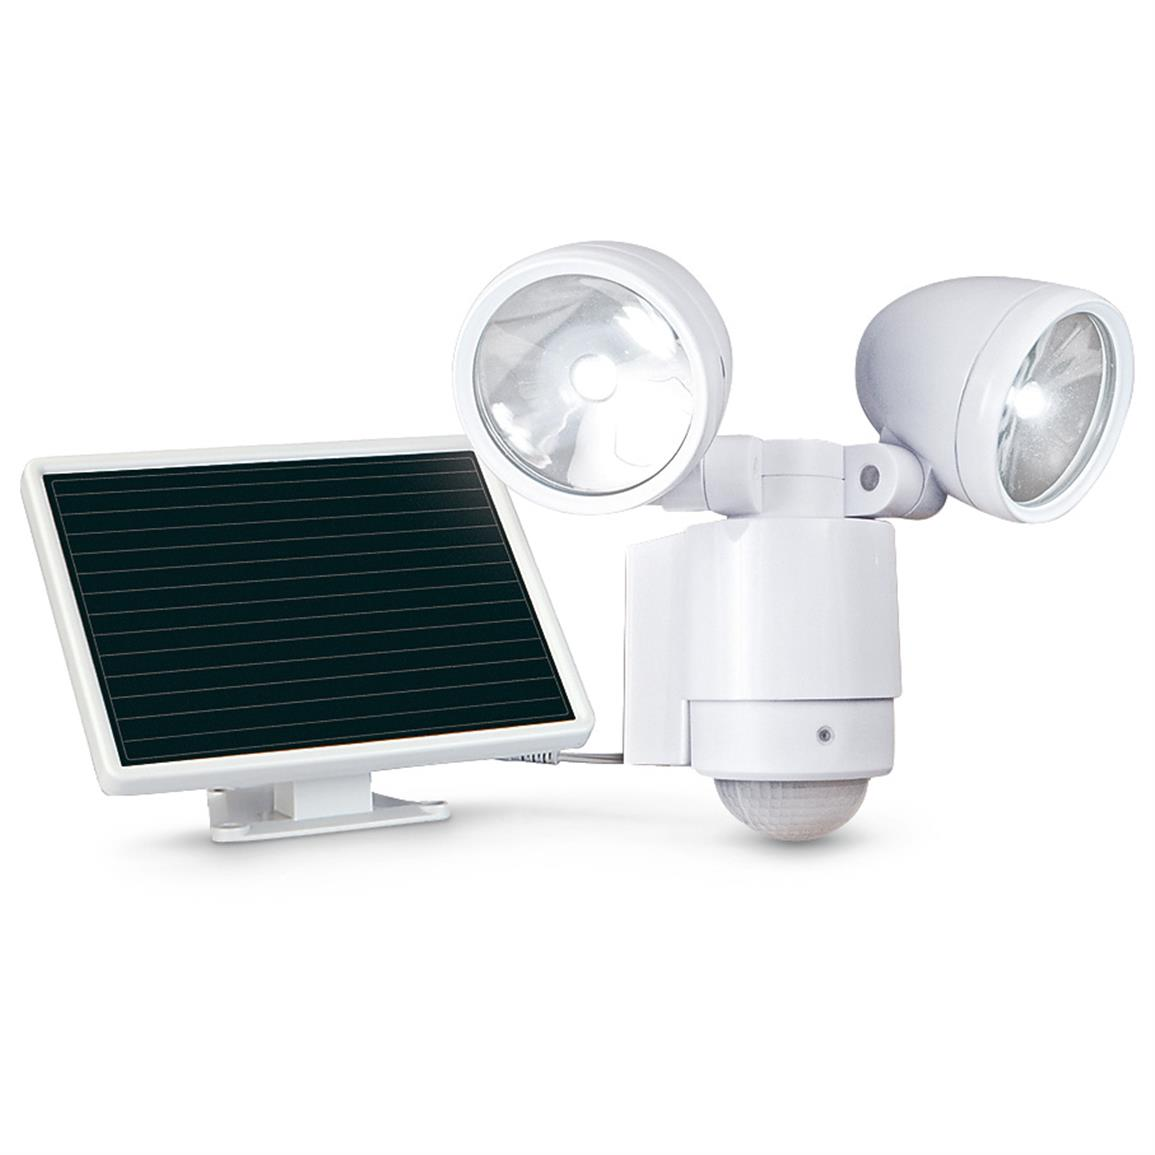 Maxsa Motion-Activated 495 Lumen Dual Head Solar LED Spotlight, White